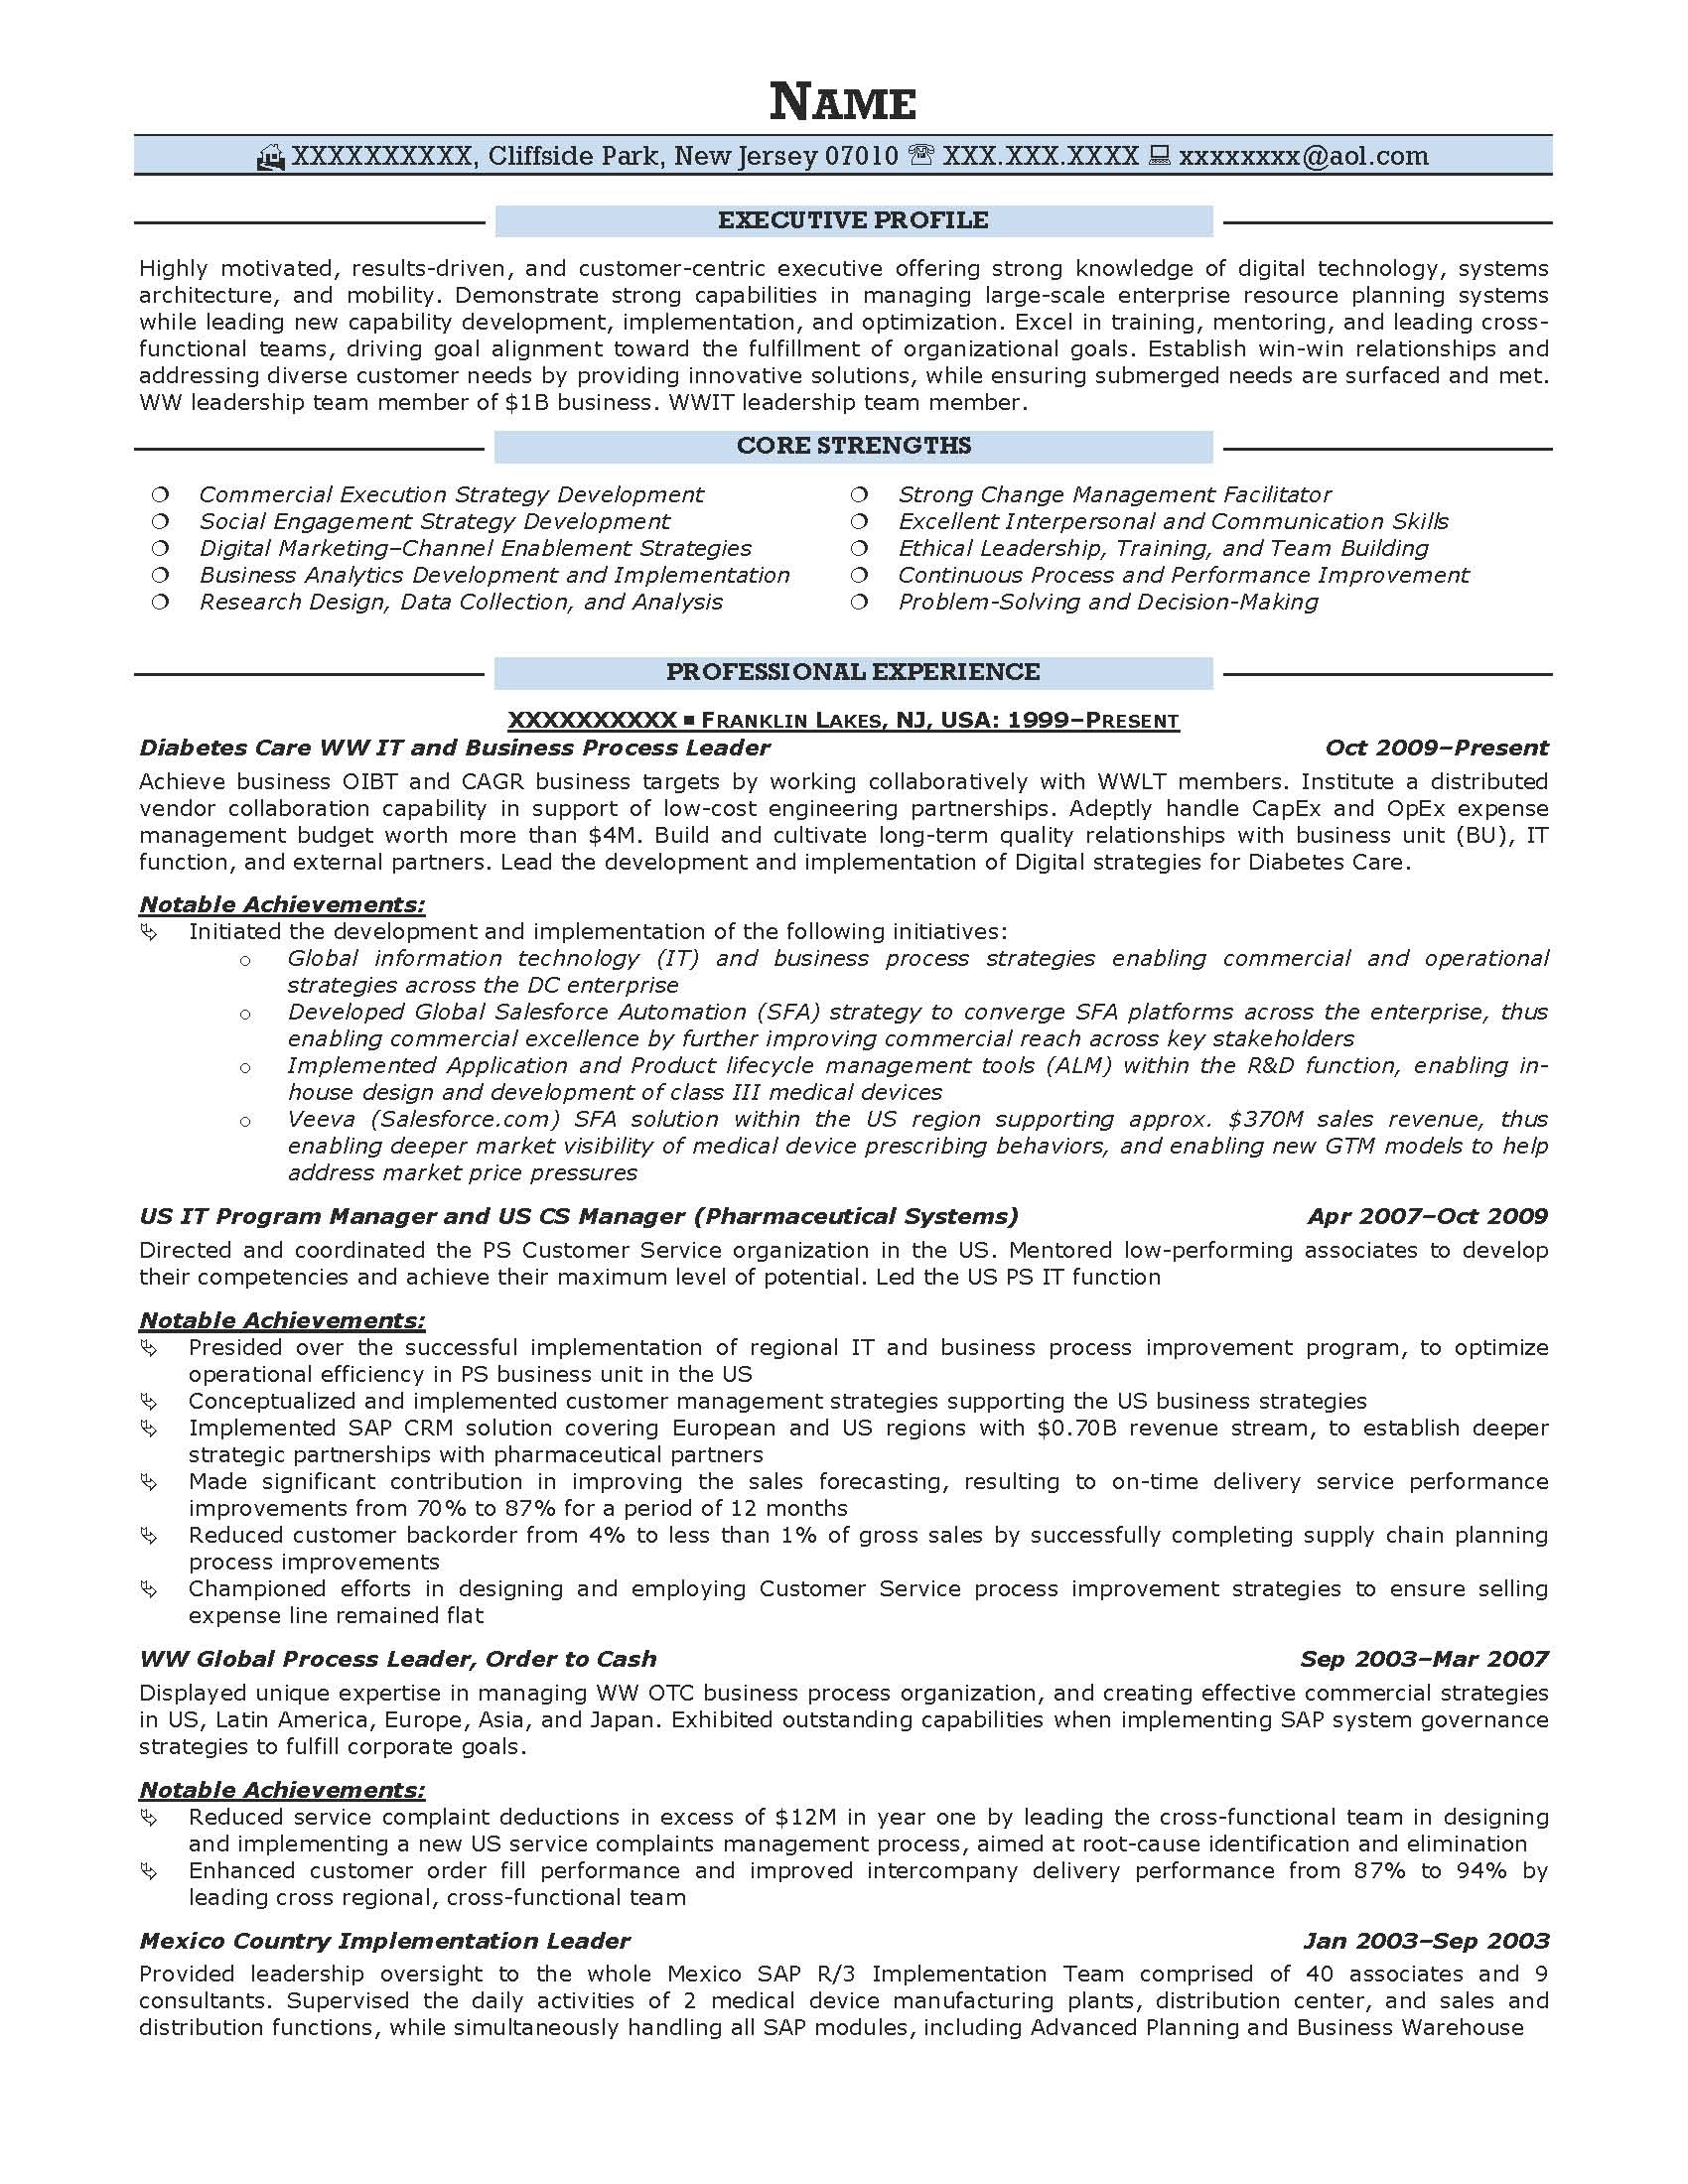 content moderation team leader resume january educational leadership example best of Resume Educational Leadership Resume